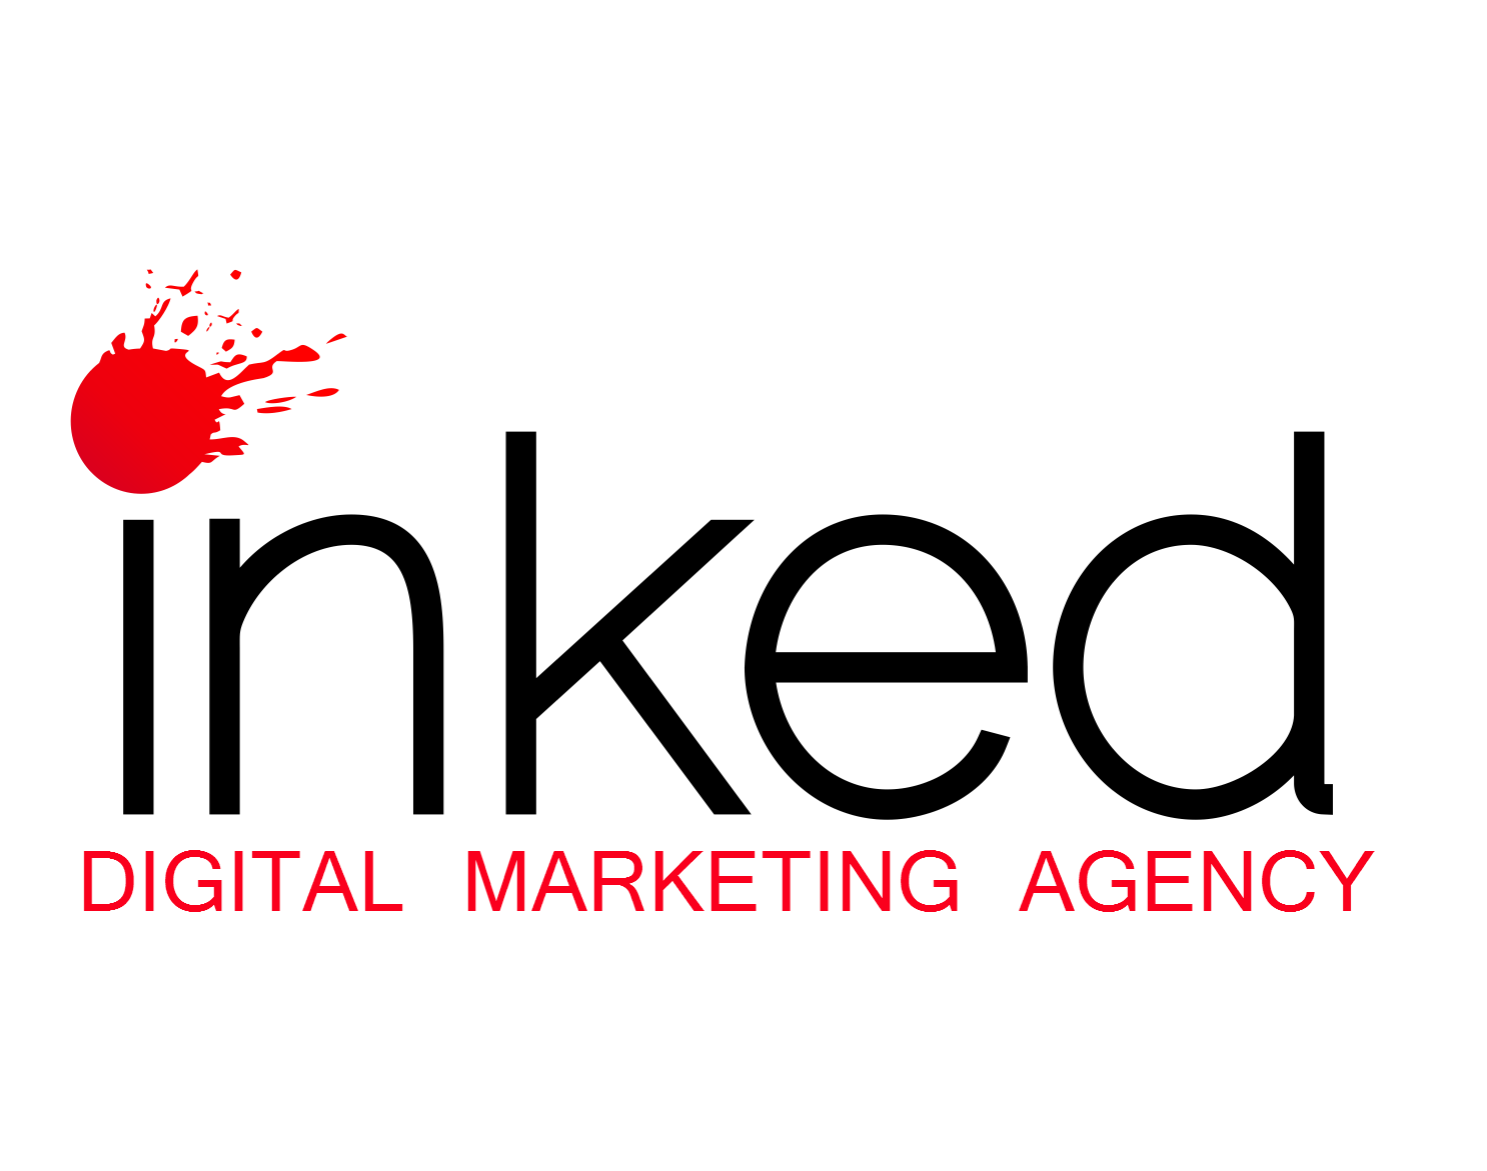 inked digital marketing agency